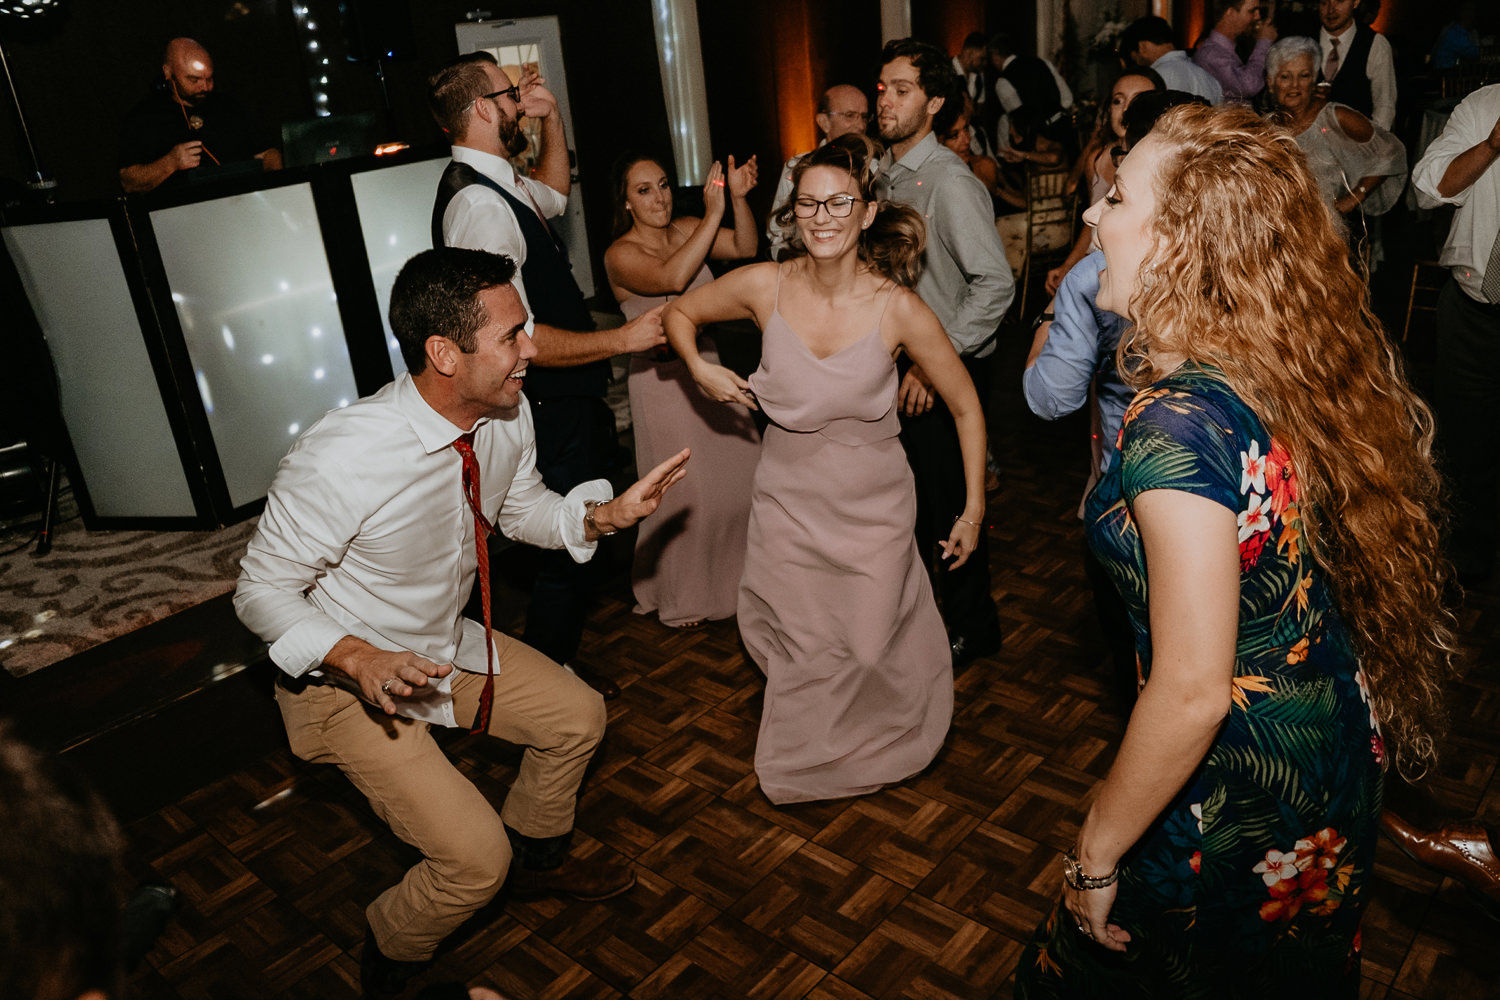 wedding guests dancing hair flapping in air